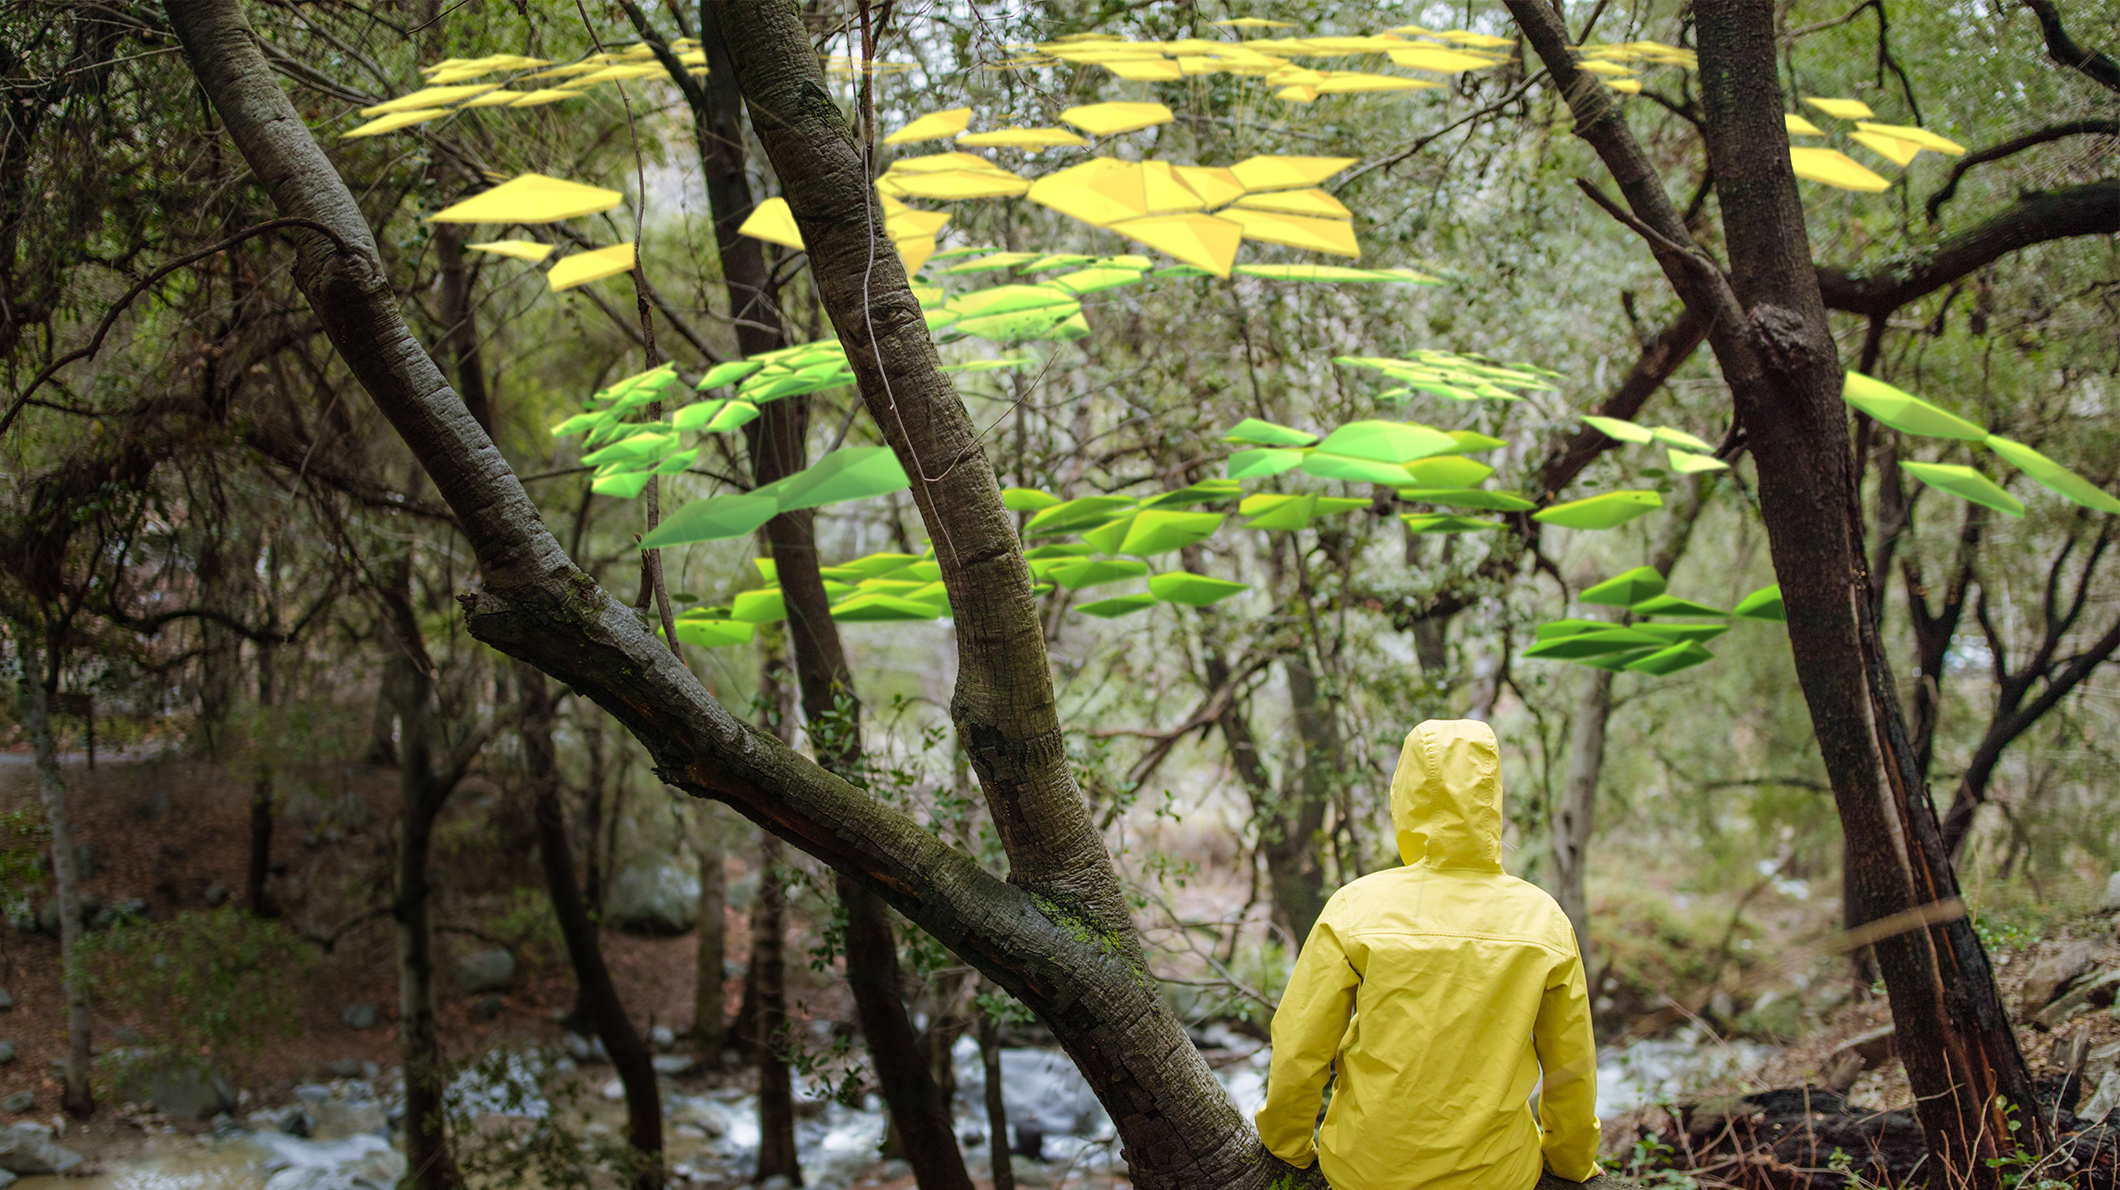 A person in a yellow raincoat sits below an AI visualization in a forest